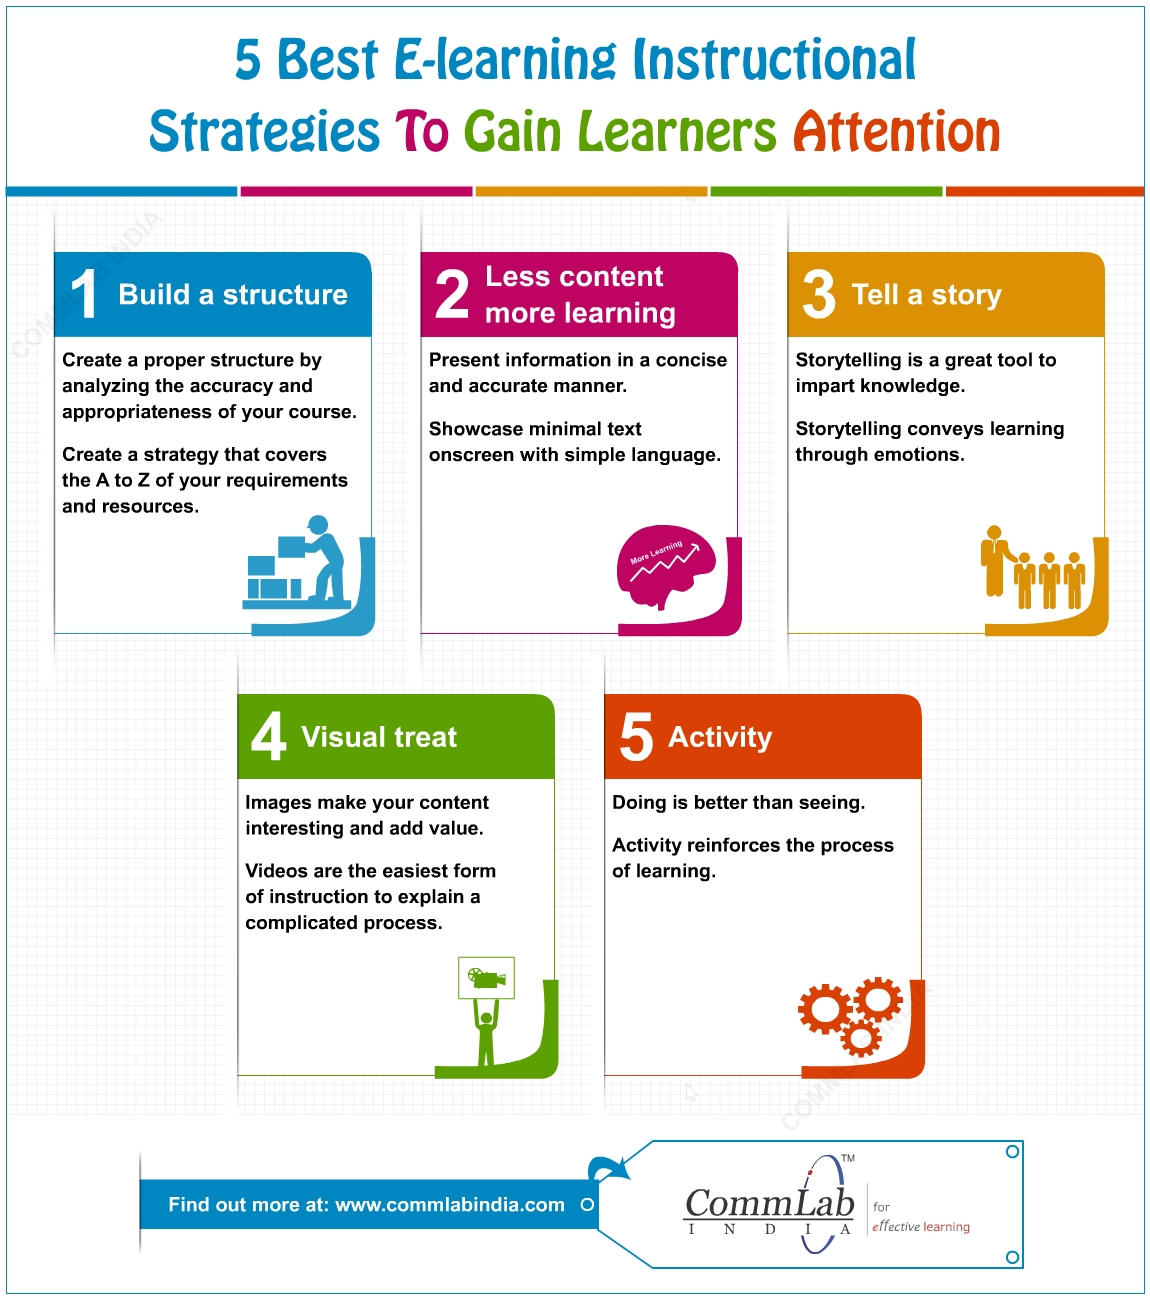 5 Proven Instructional Strategies to Gain Learners' Attention – An Infographic